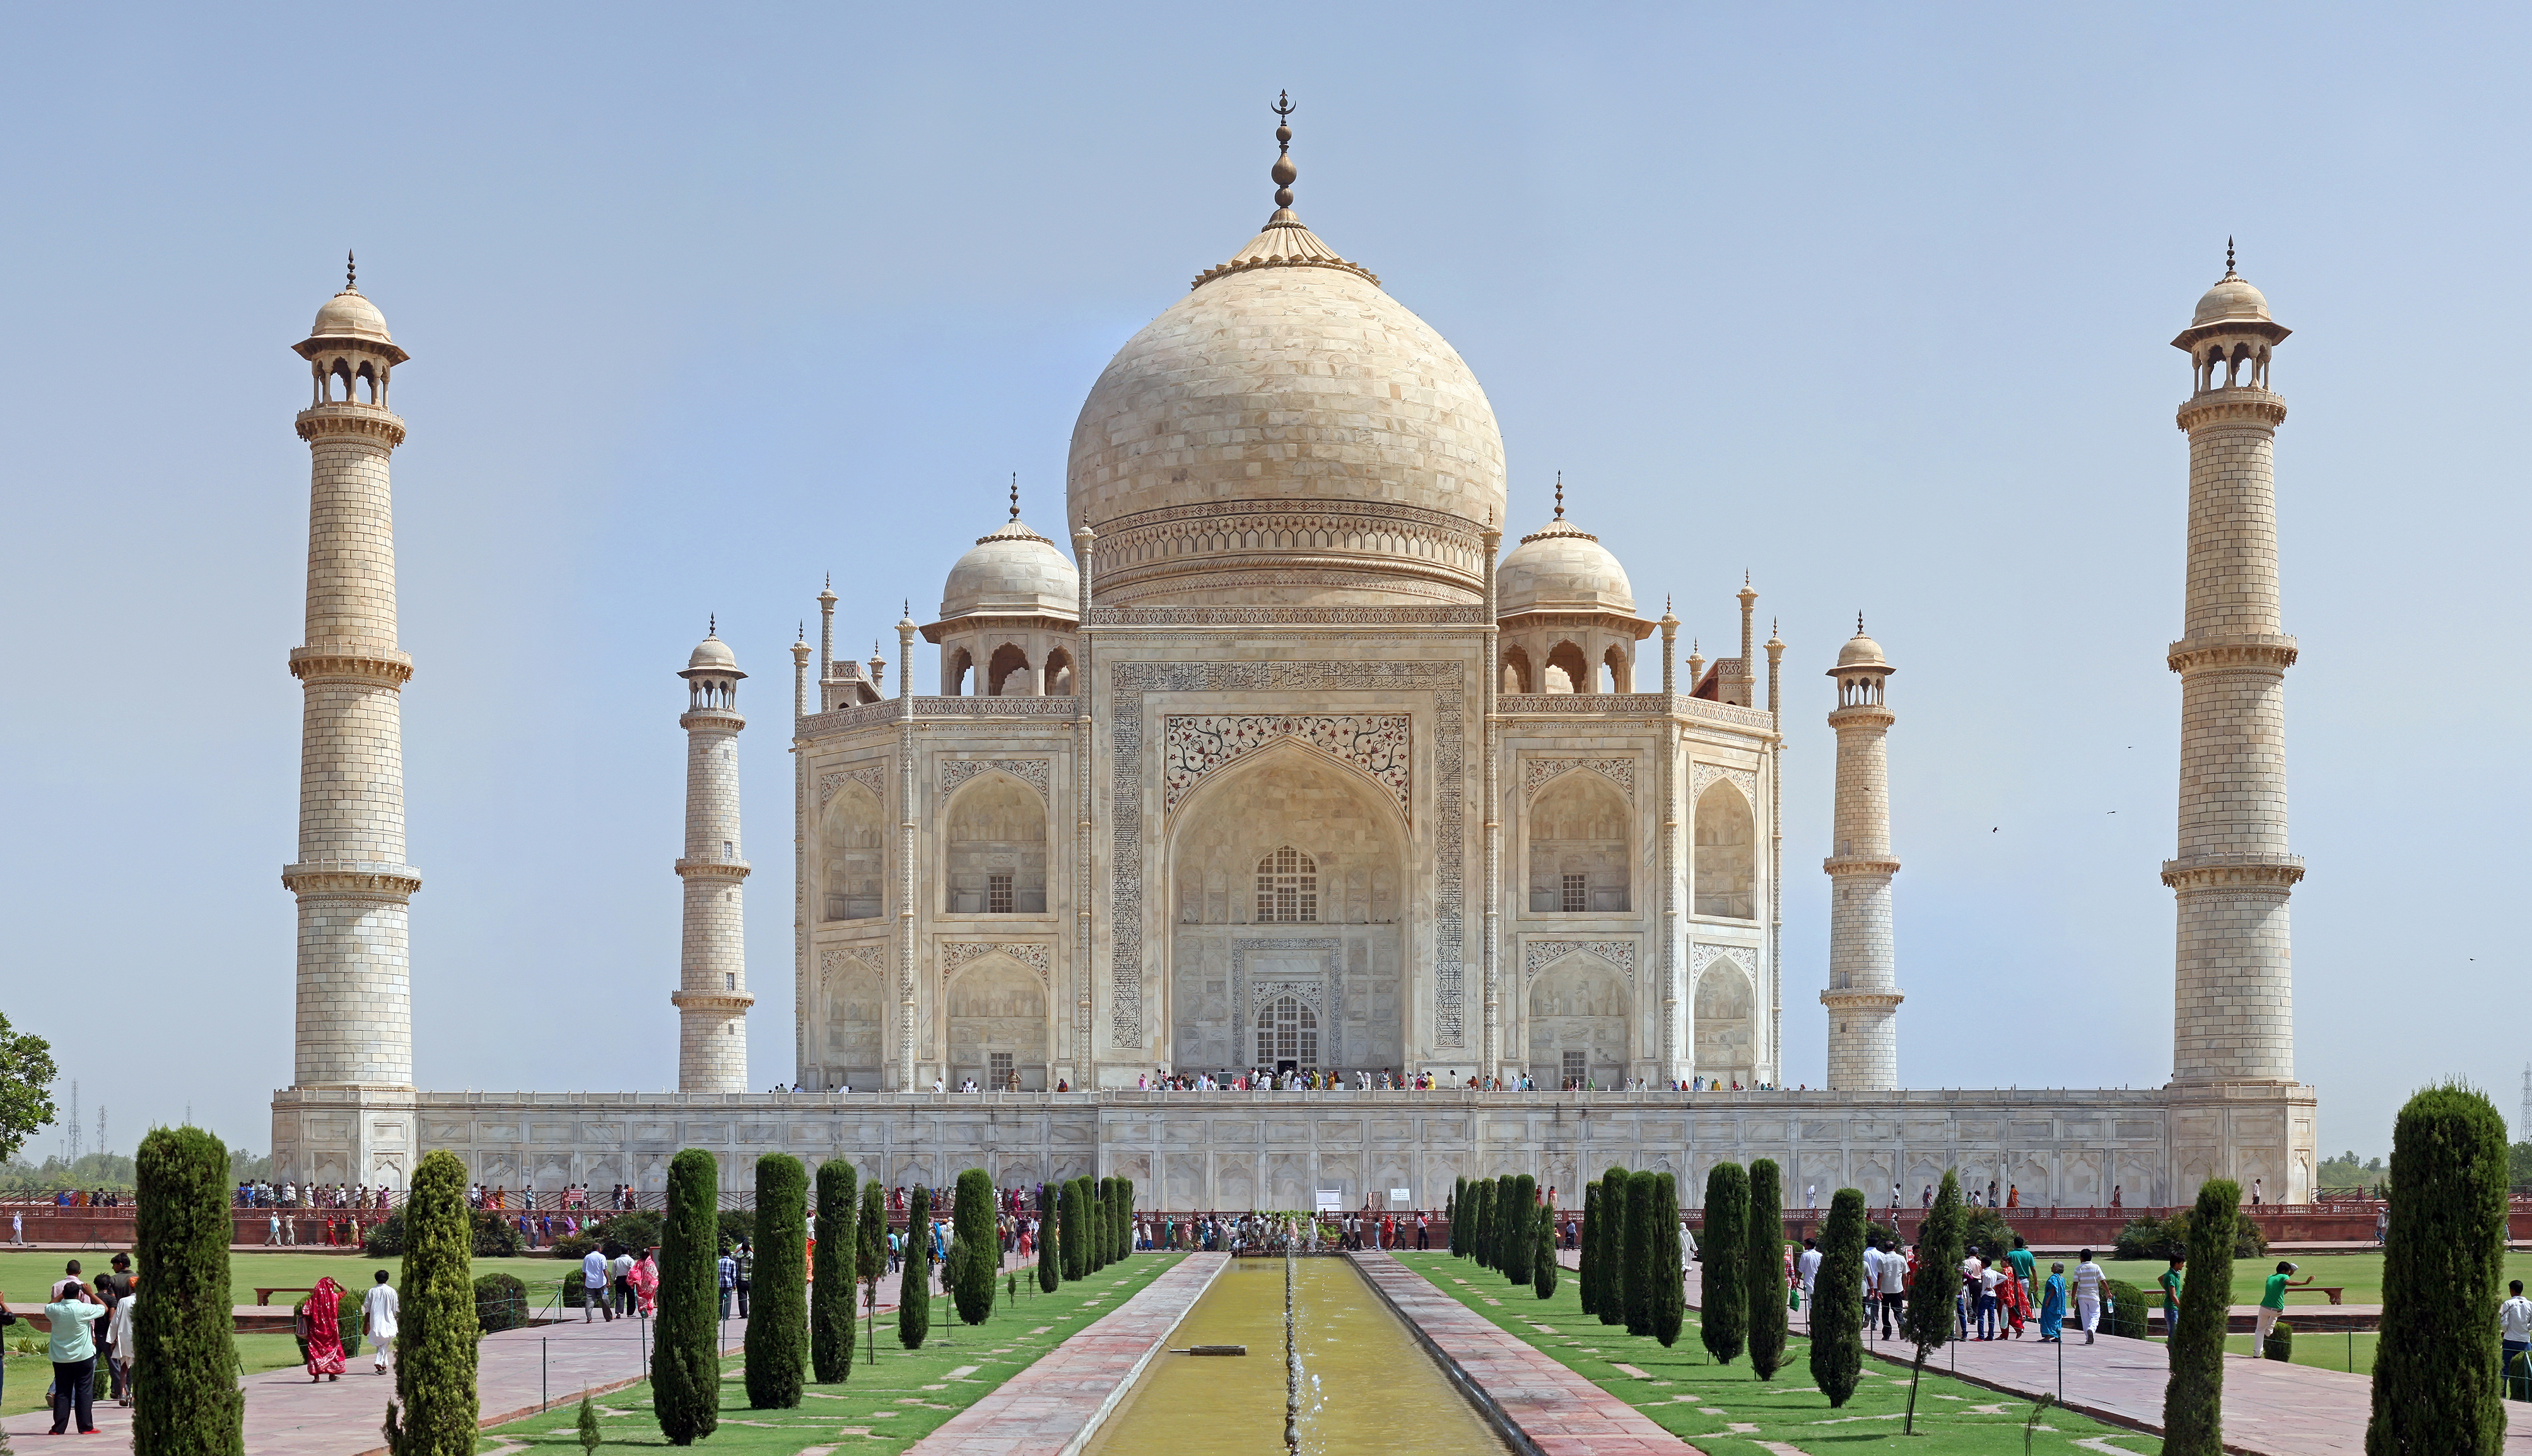 Agra - Wikipedia, the free encyclopedia